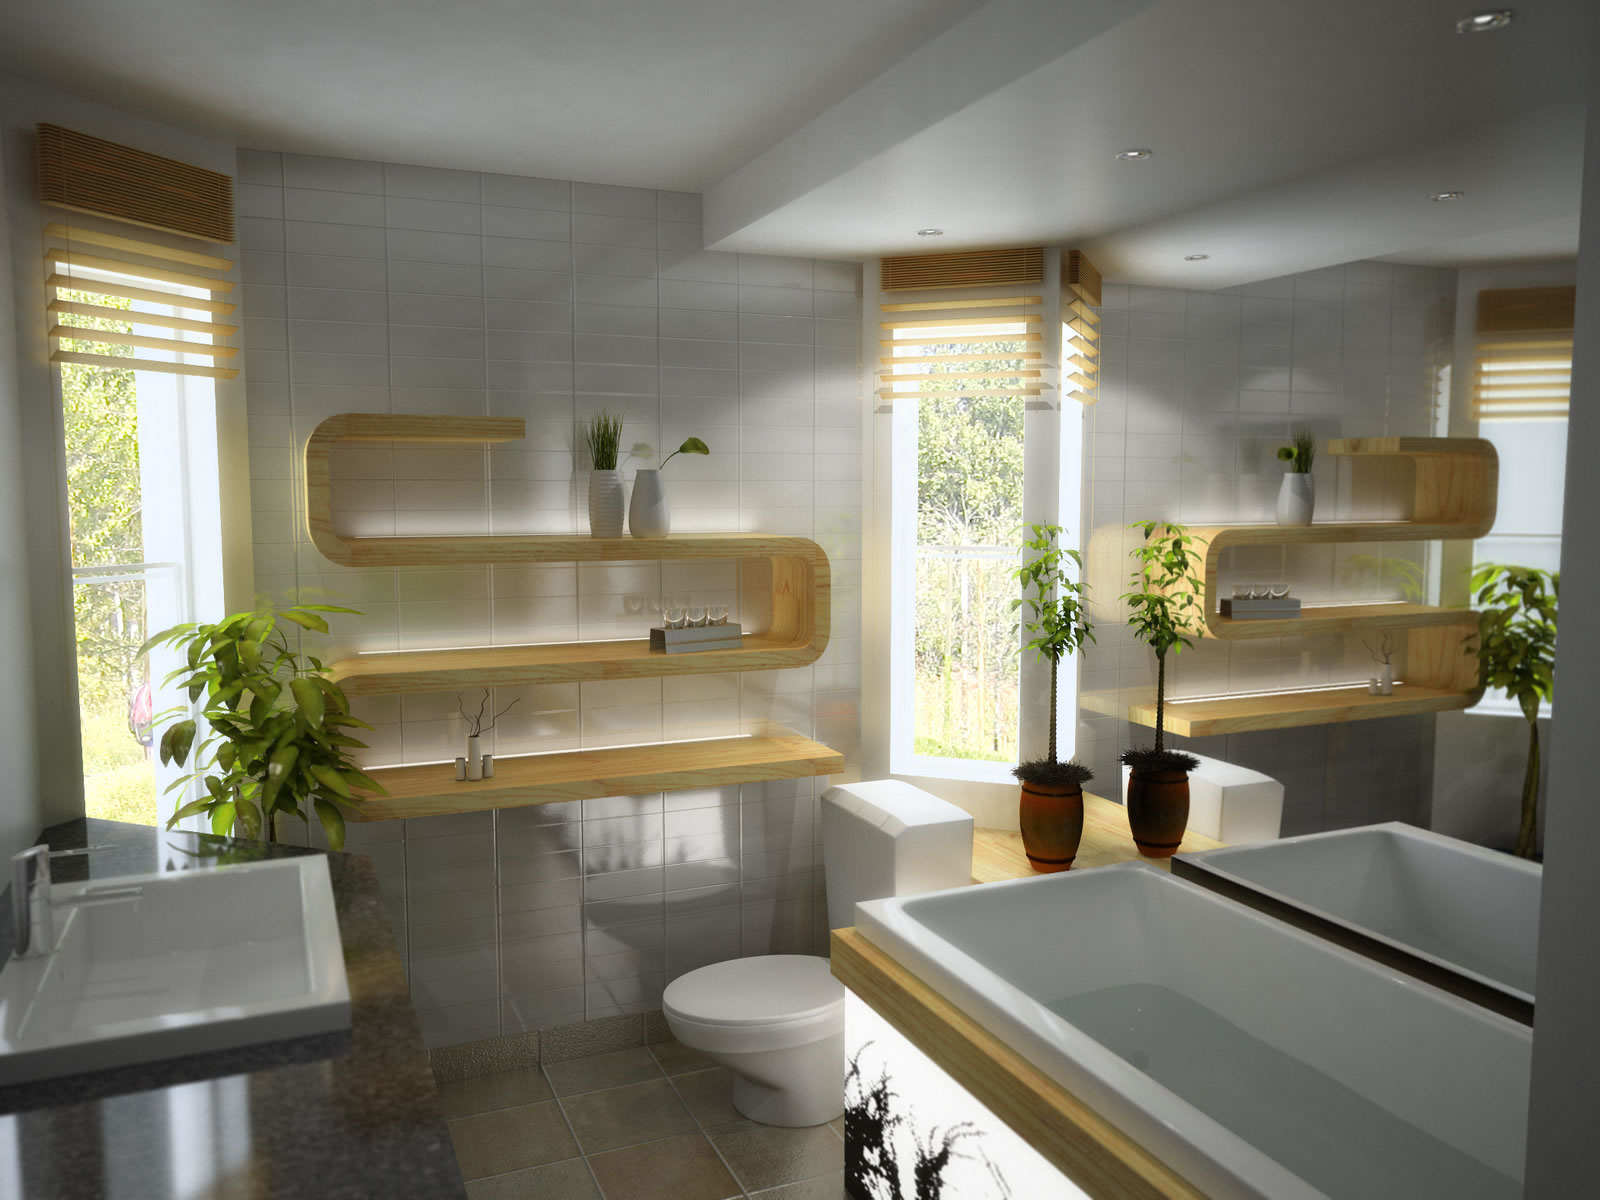 Some Key Elements Which Can Impart Completely A Different Look To Bathroom Toronto Kitchen